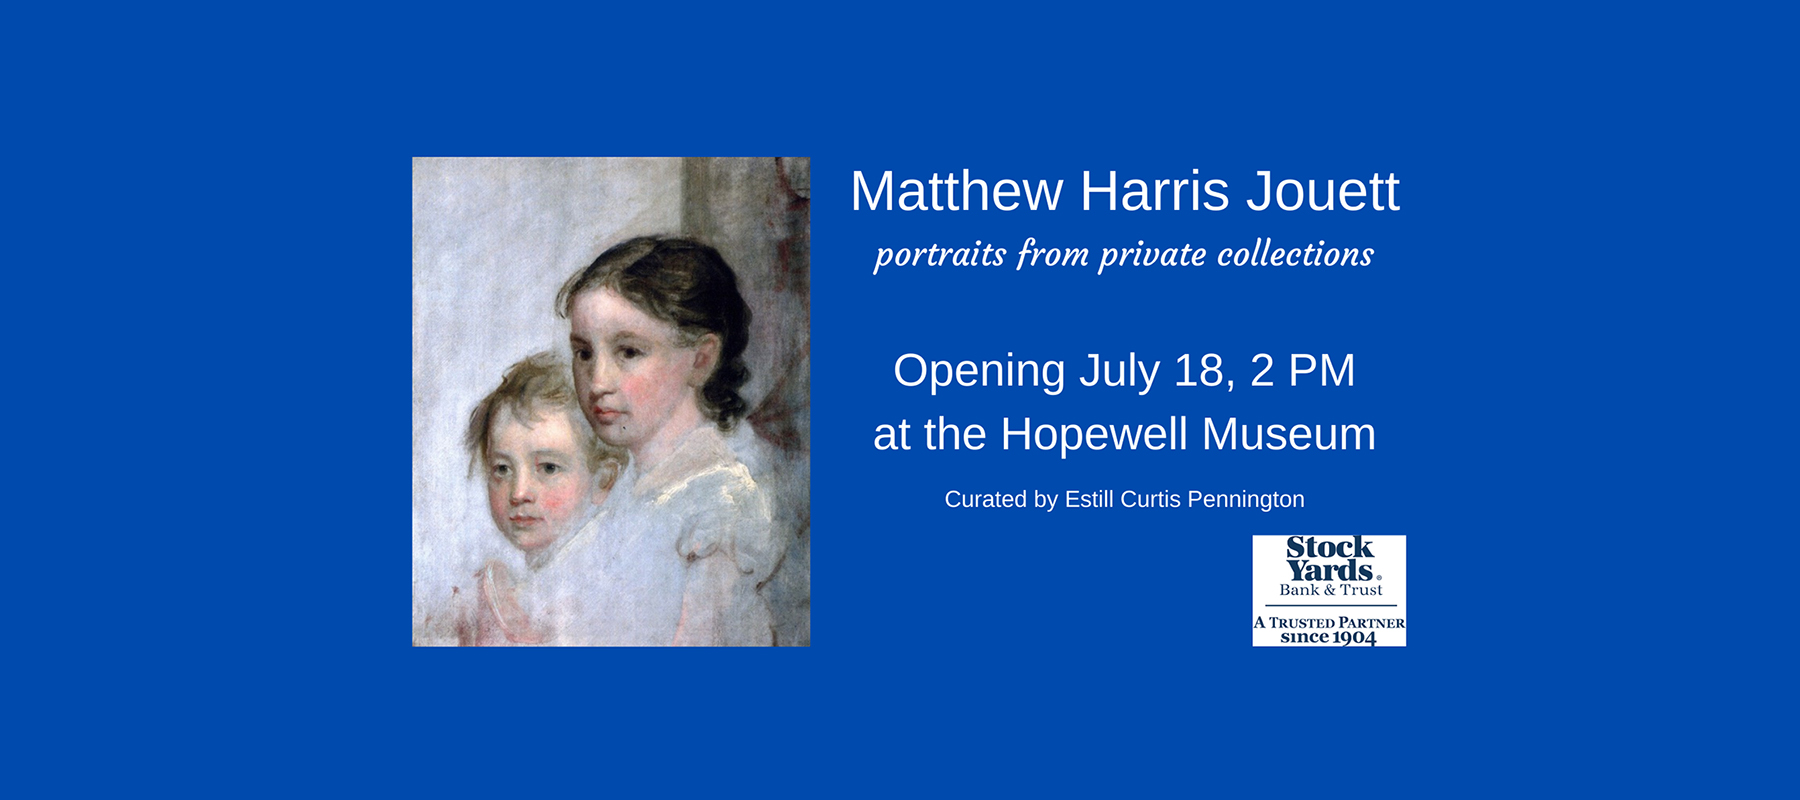 Matthew Harris Jouett: portraits from private collections, opening July 18, 2 p.m. at the Hopewell Museum. Curated by Estill Curtis Pennington and sponsored by Stock Yards Bank & Trust